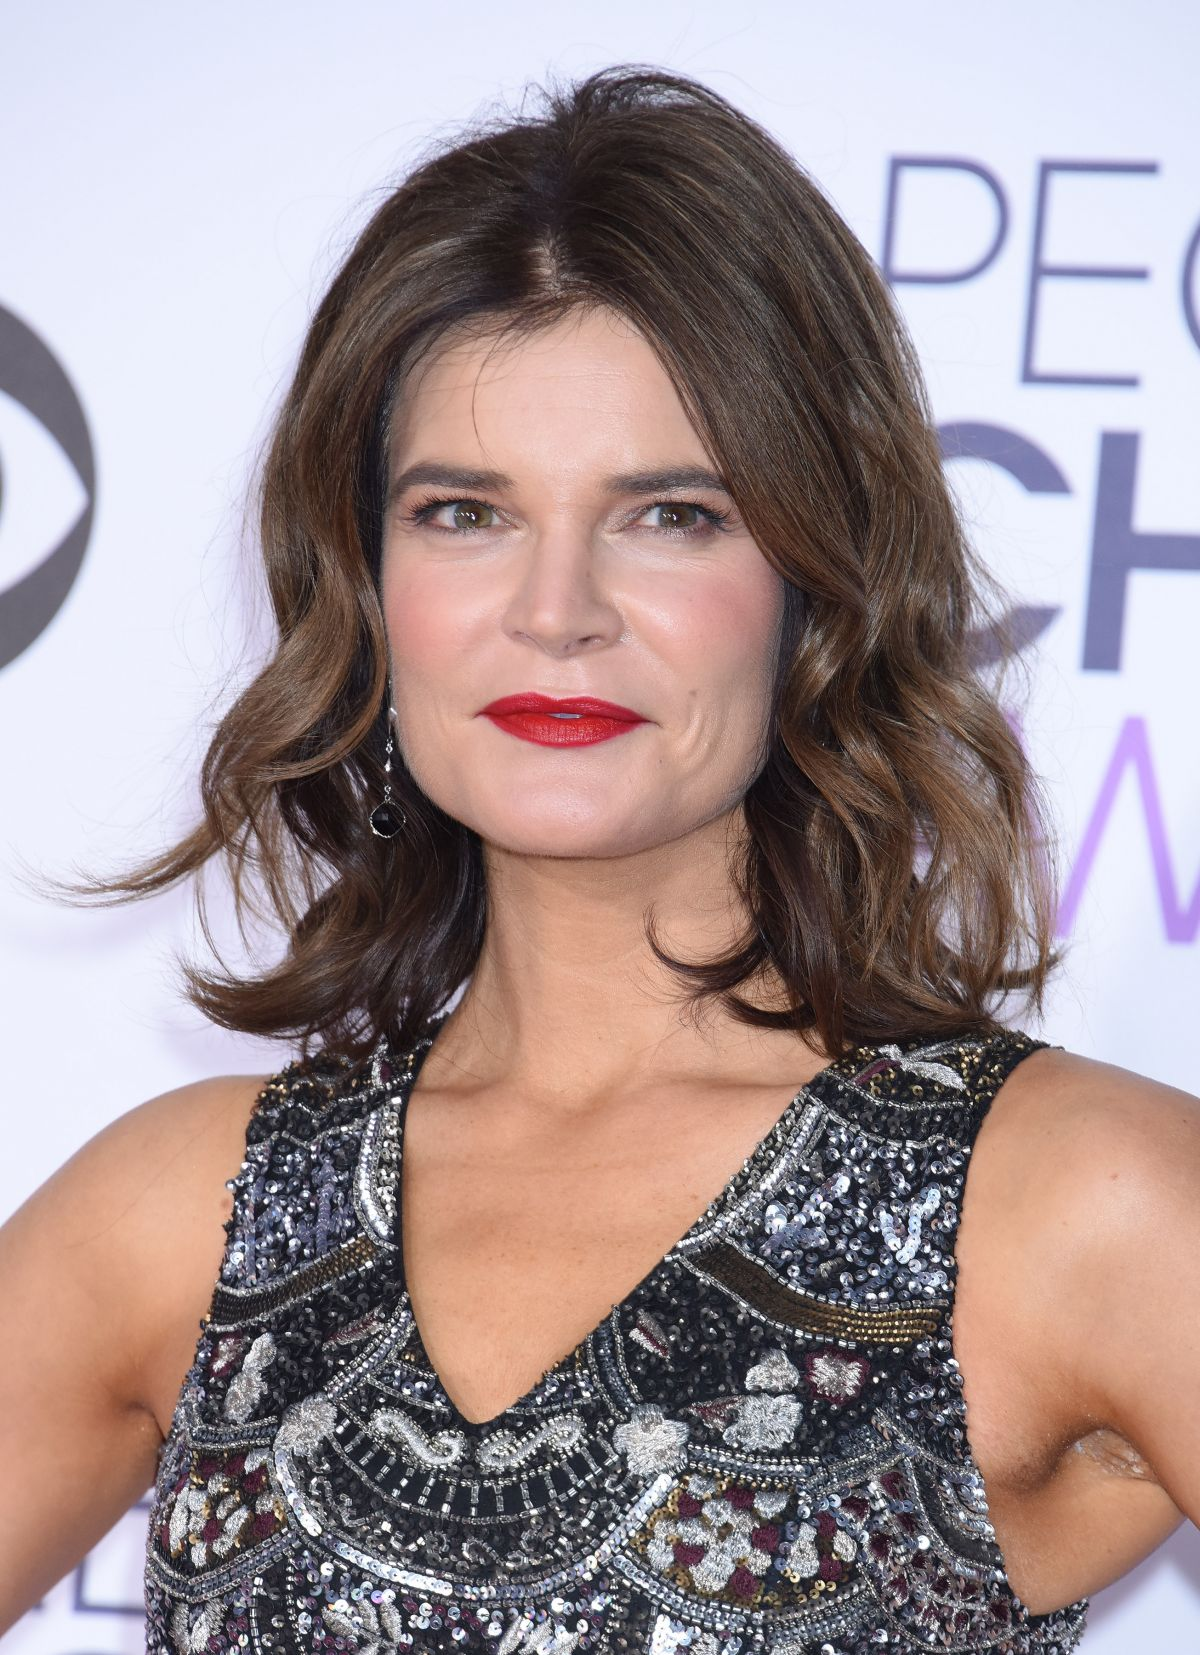 BETSY BRANDT at 2016 People's Choice Awards in Los Angeles 01/06/2016